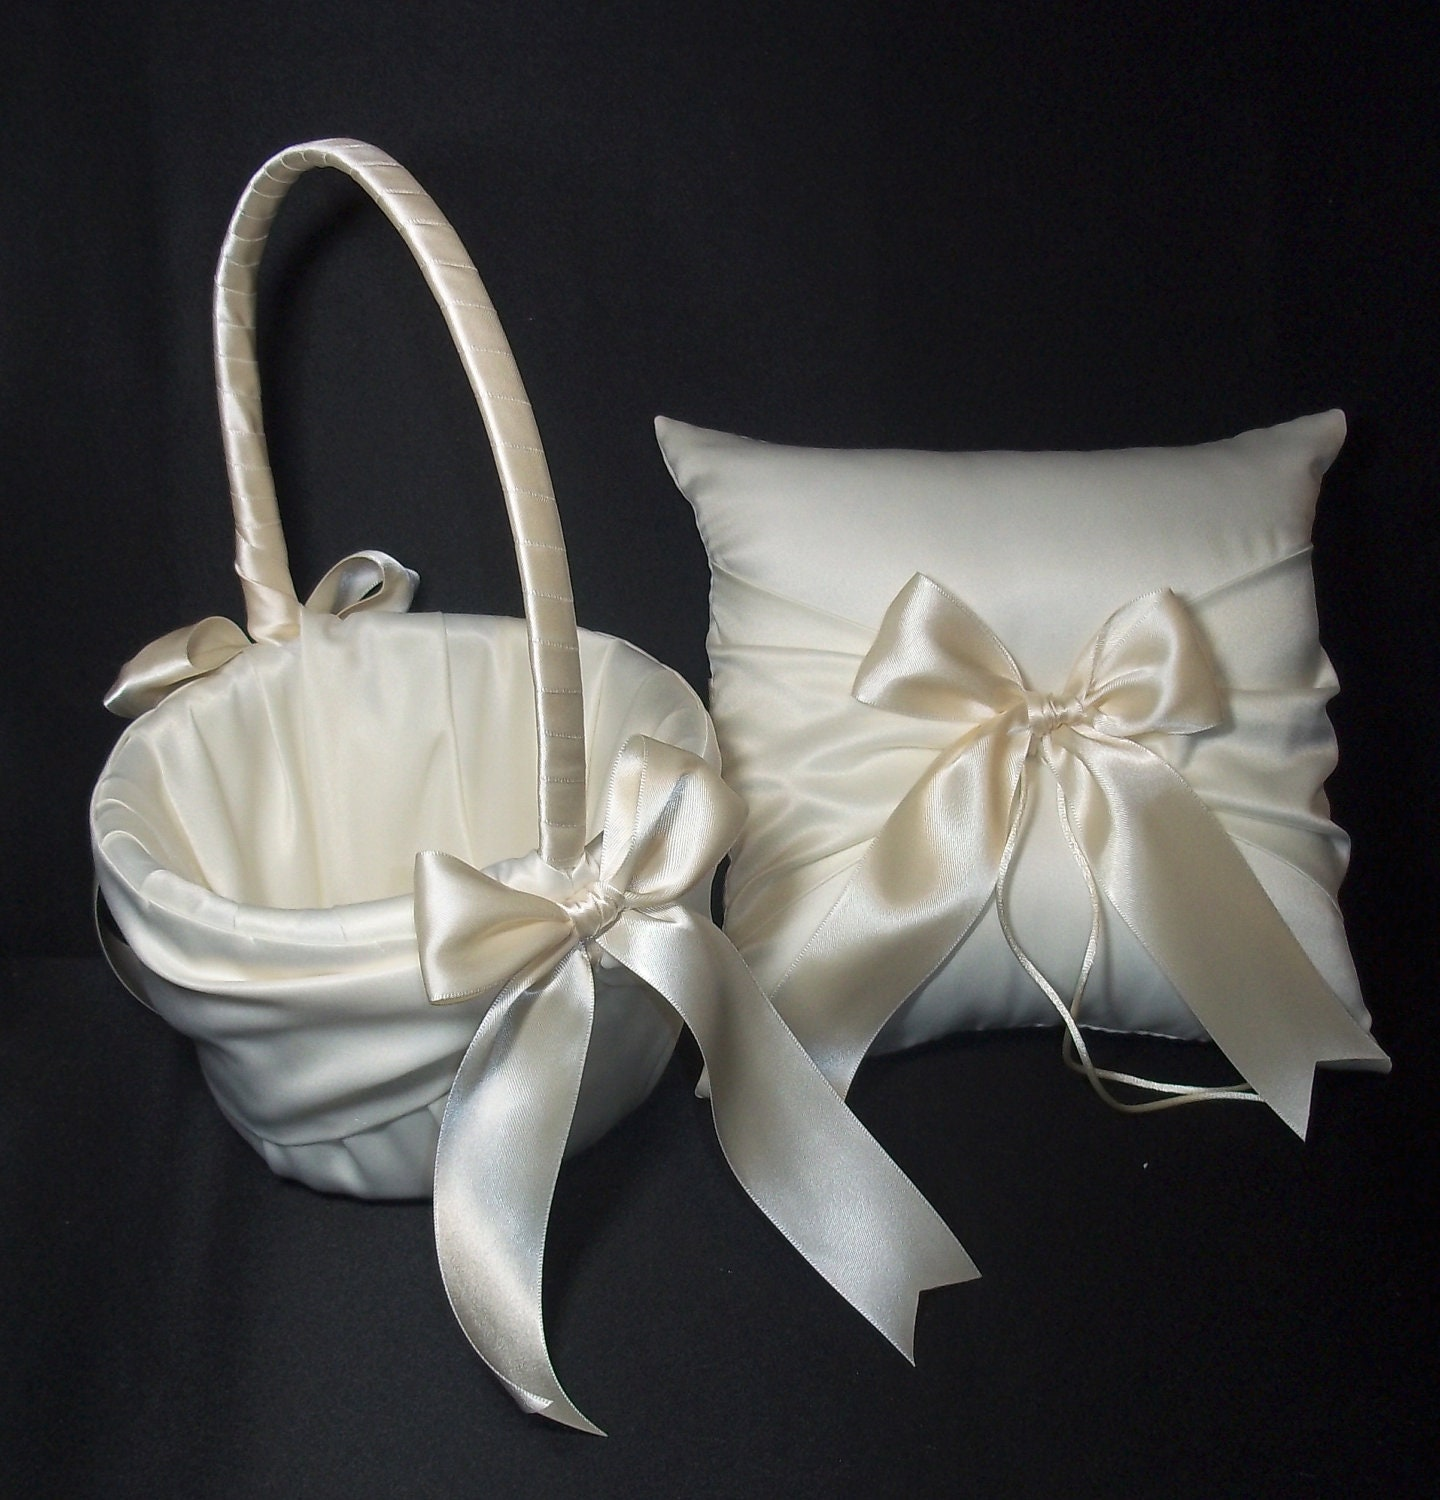 Flower Girl Baskets And Ring Pillows : Ivory or white wedding ring bearer pillow flower girl basket